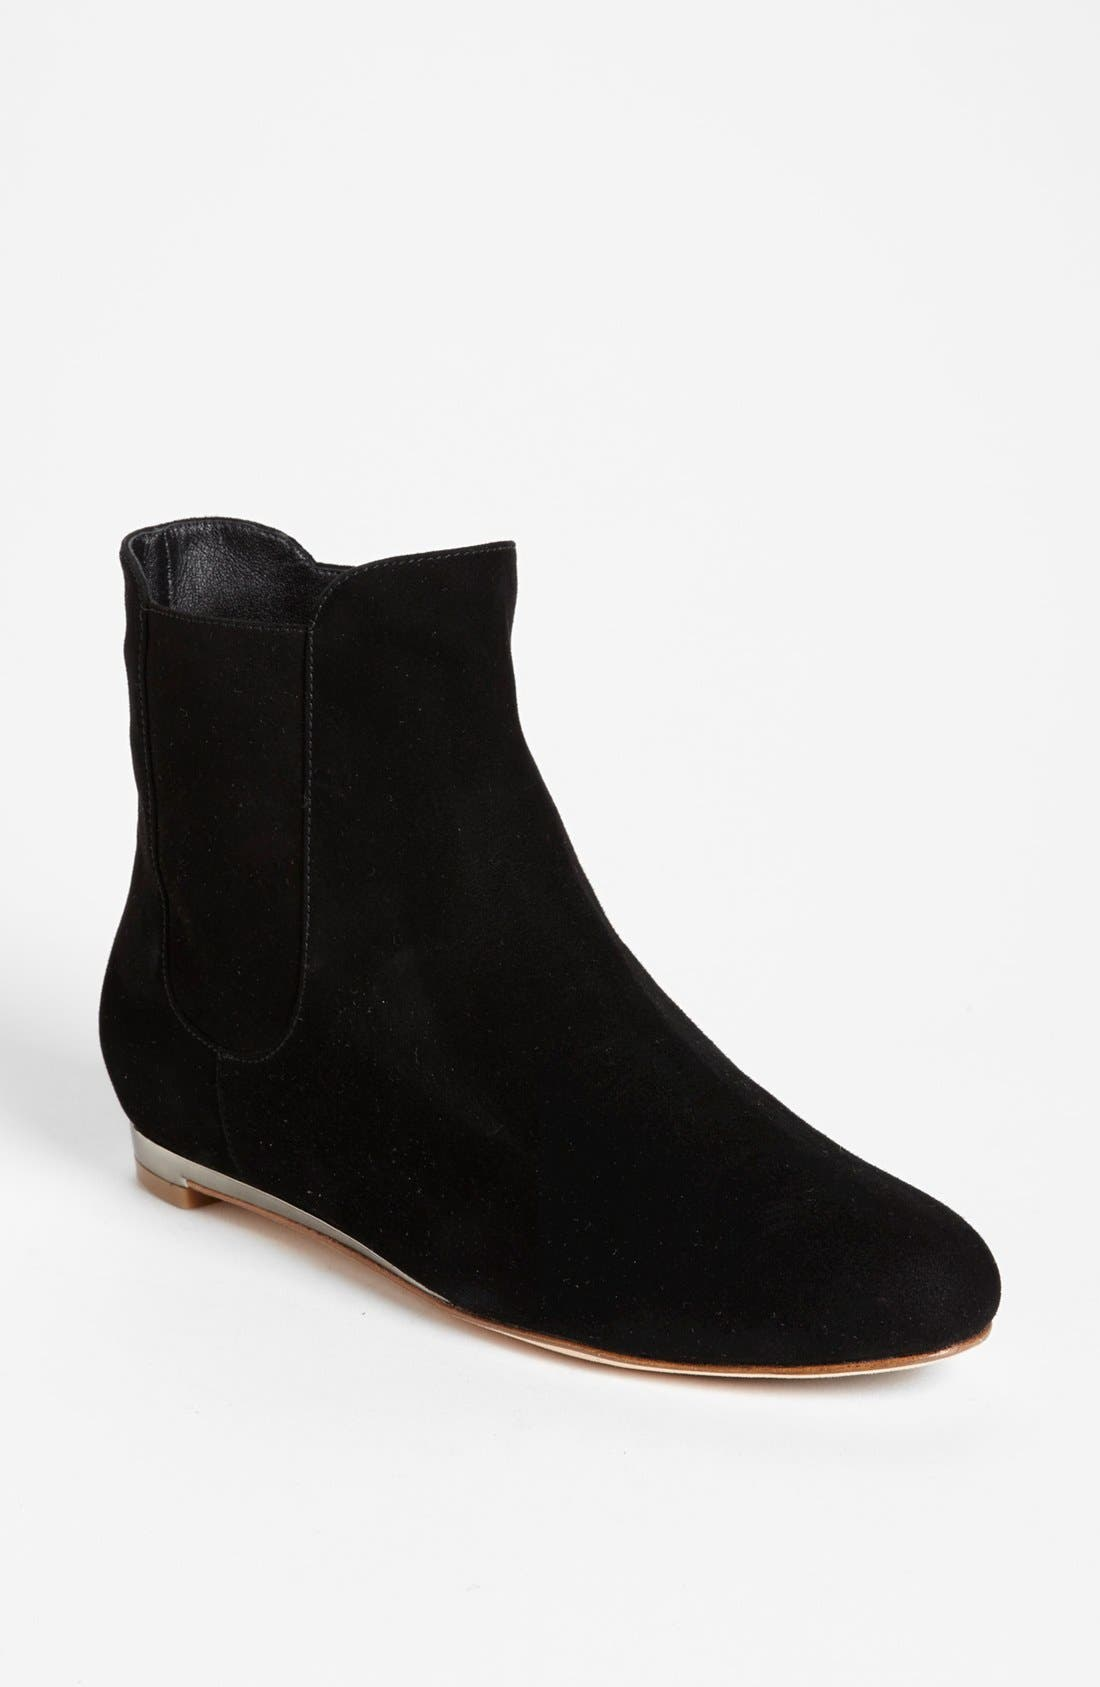 Alternate Image 1 Selected - Cole Haan 'Astoria' Boot